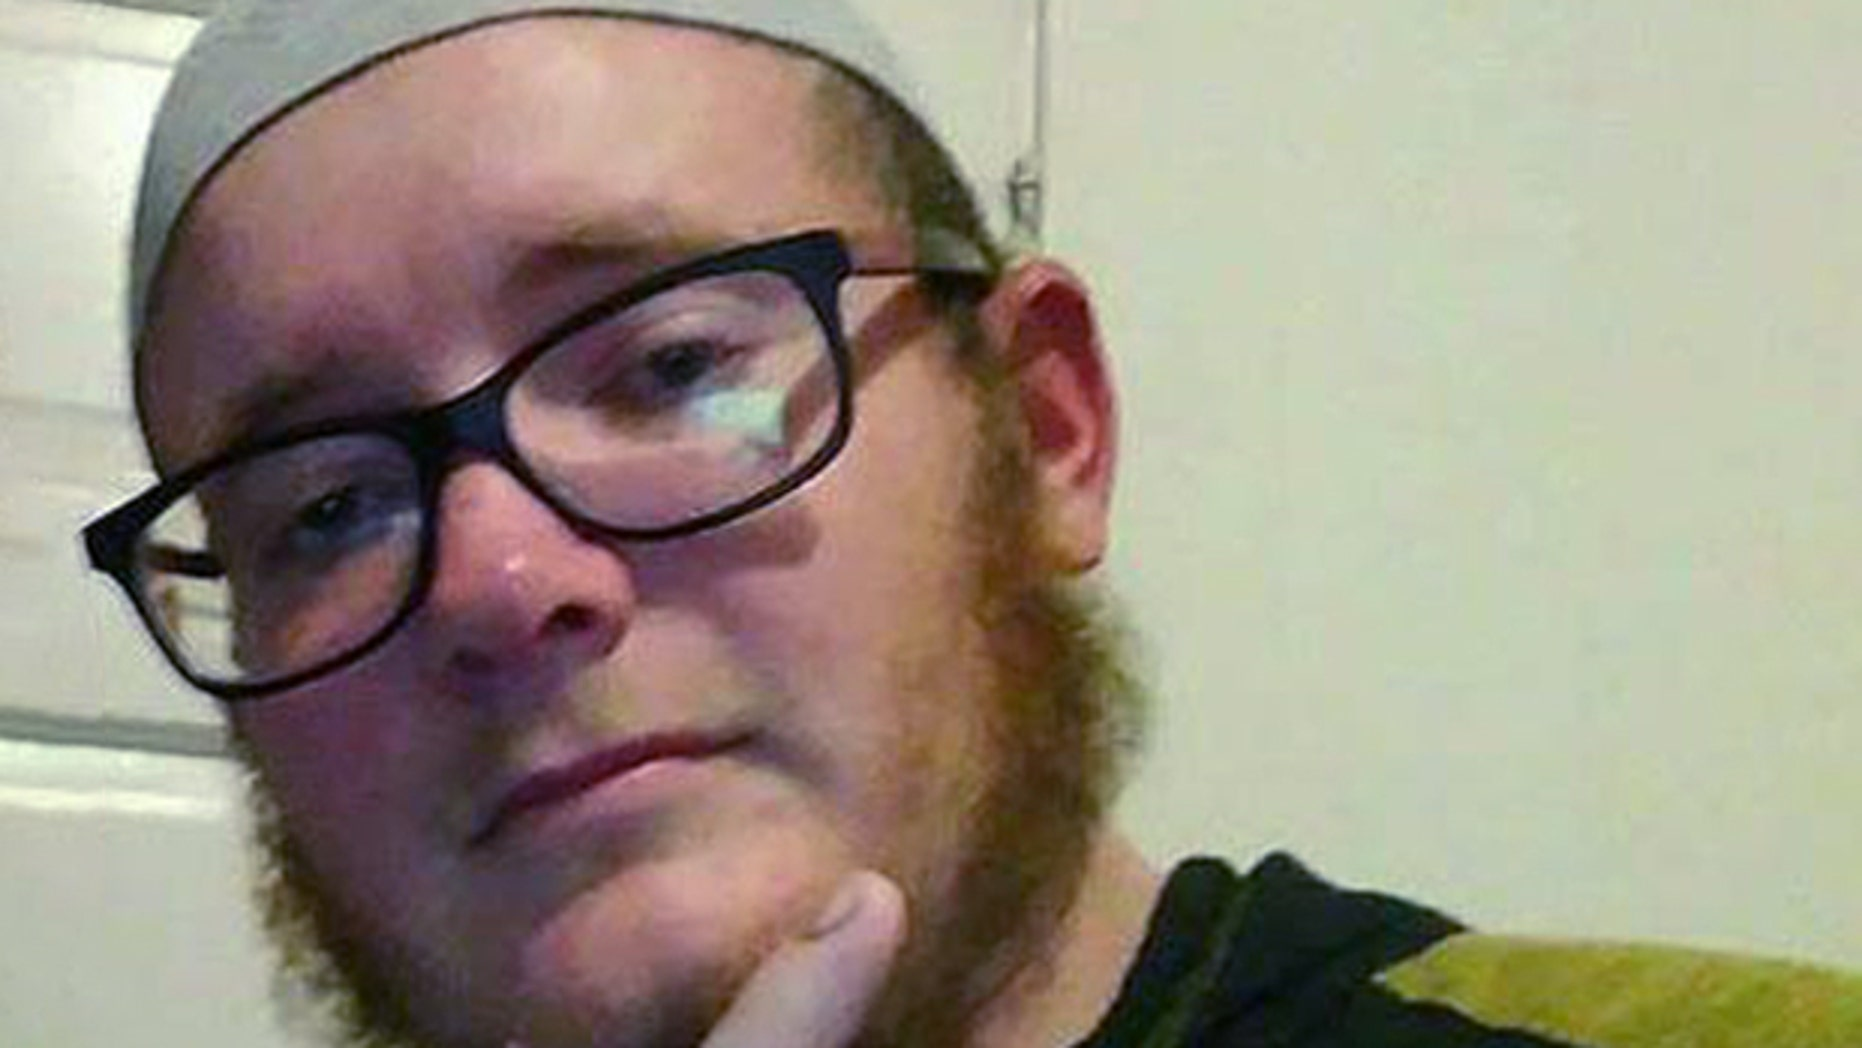 Everitt Aaron Jameson, of Modesto, Calif., who told undercover agents he wanted to carry out a Christmas Day bombing at a popular San Francisco tourist attraction, was sentenced to 15 years in prison Monday.